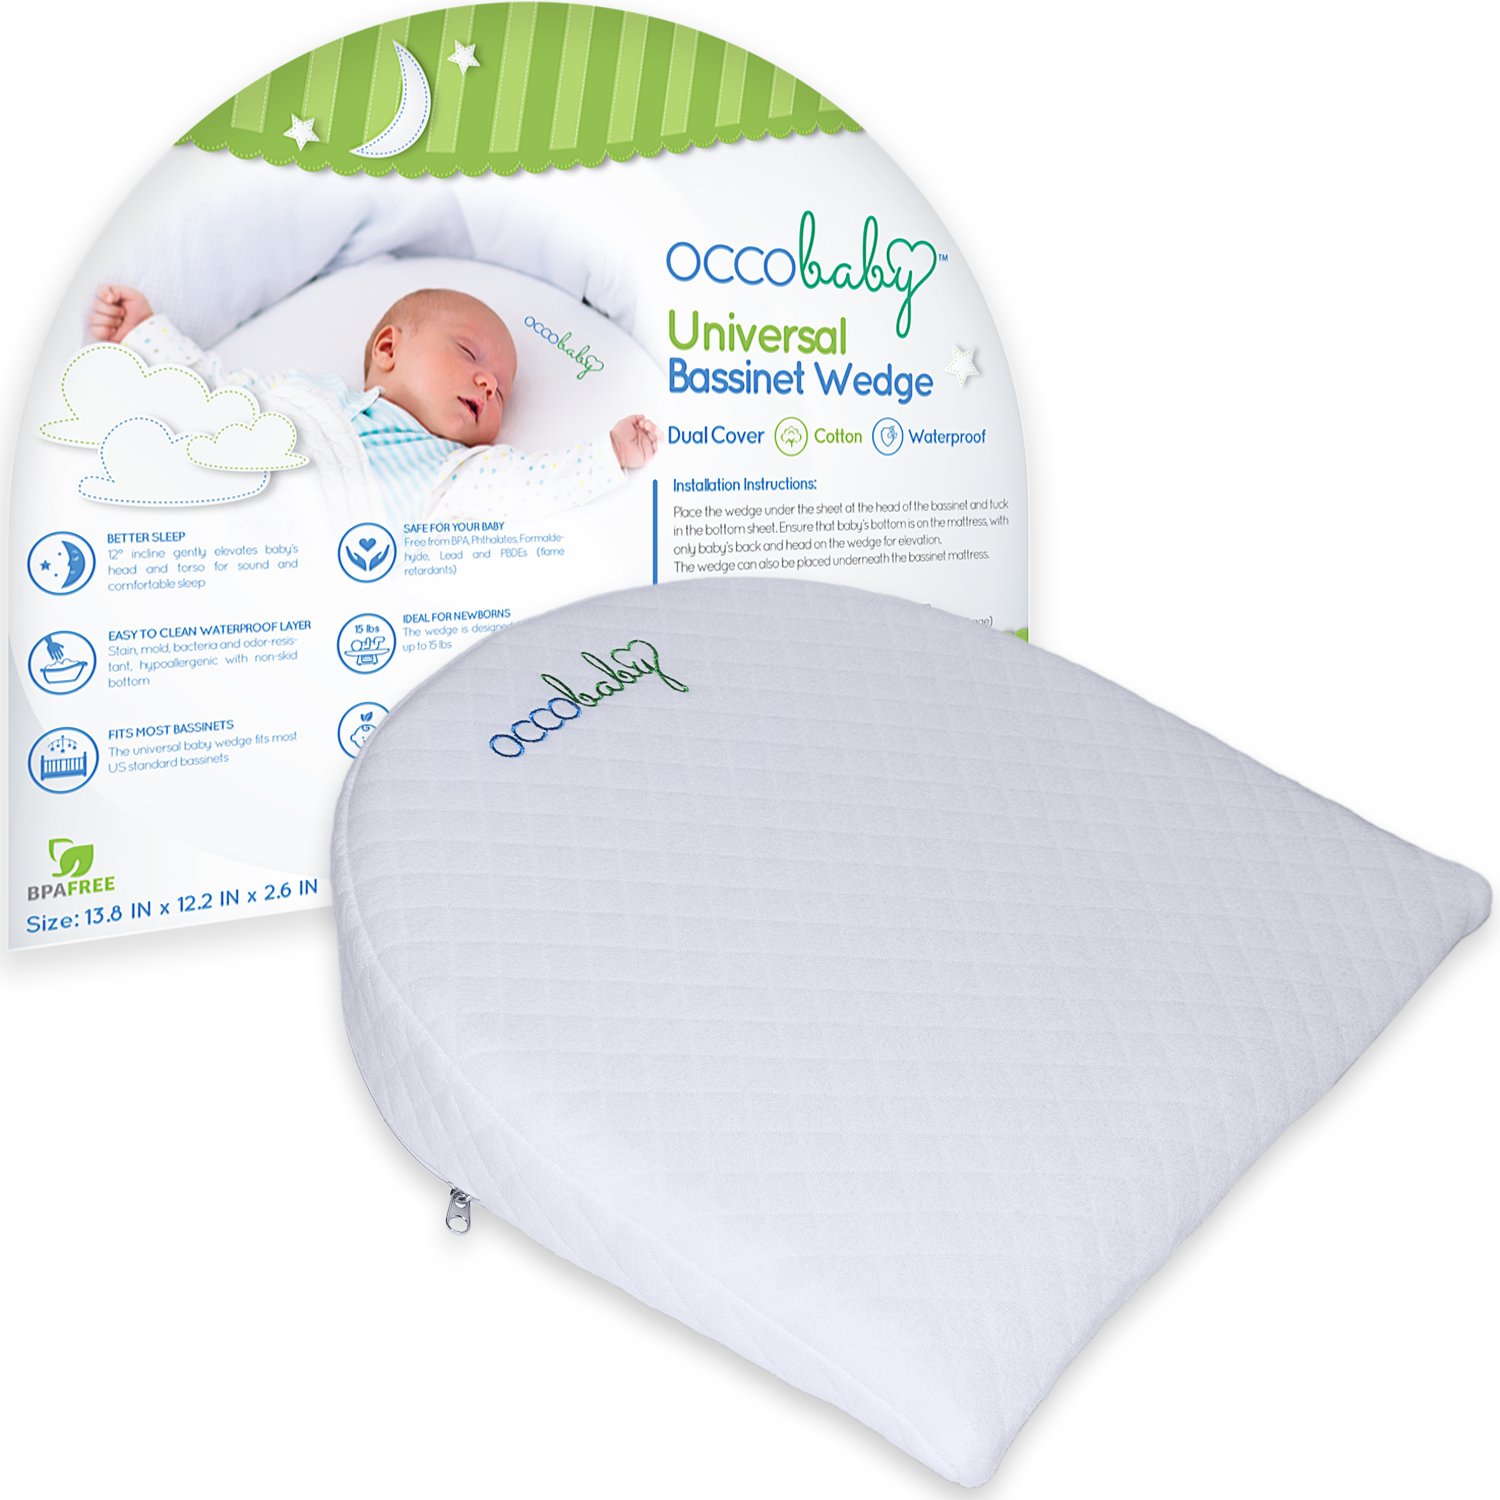 OCCObaby Universal Bassinet Wedge Pillow | Waterproof Layer & Handcrafted  Cotton Removable Cover | 12-degree Incline for Better Night's Sleep